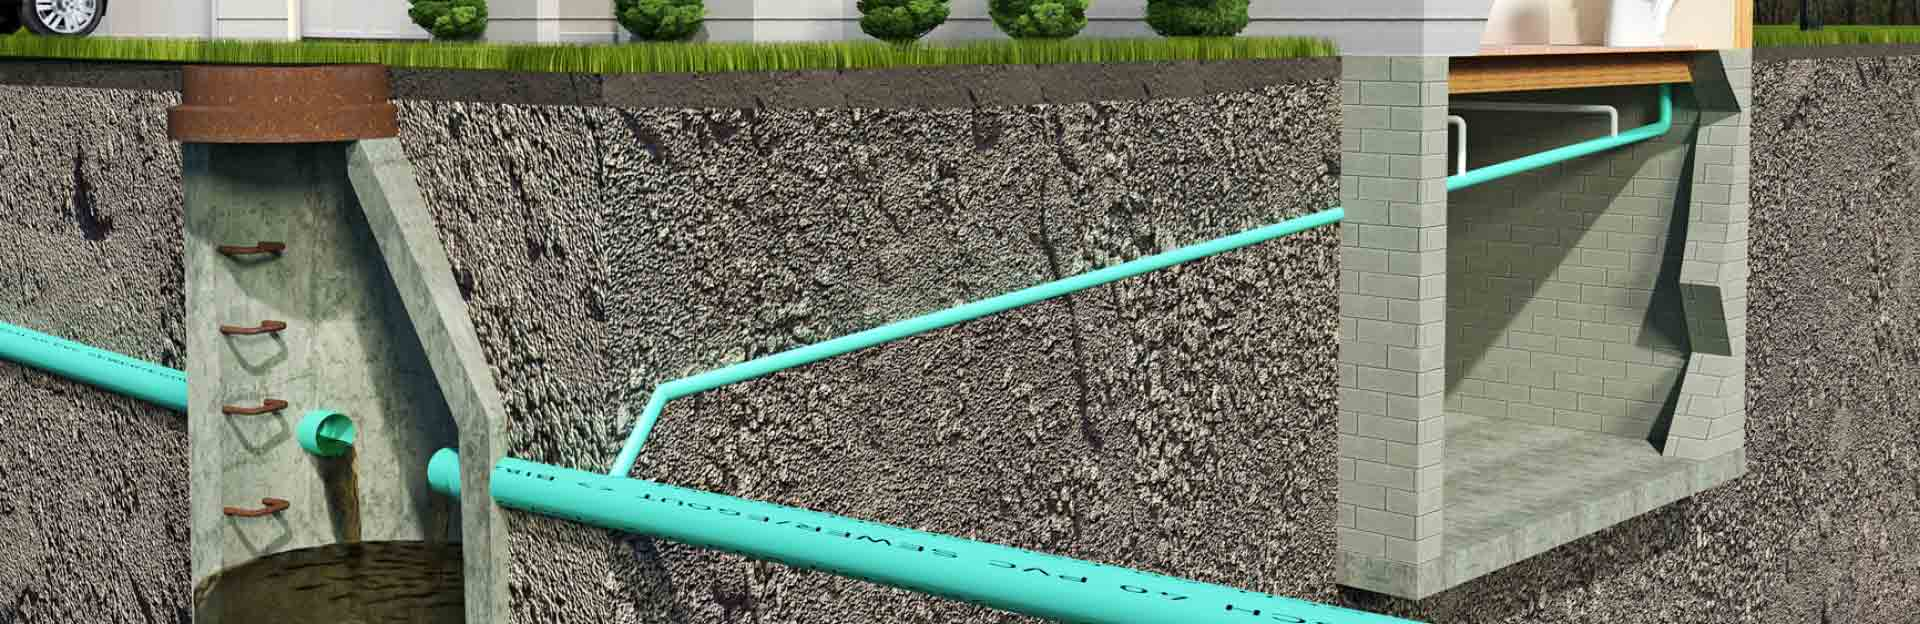 Septic system design in the Texas Hill Country